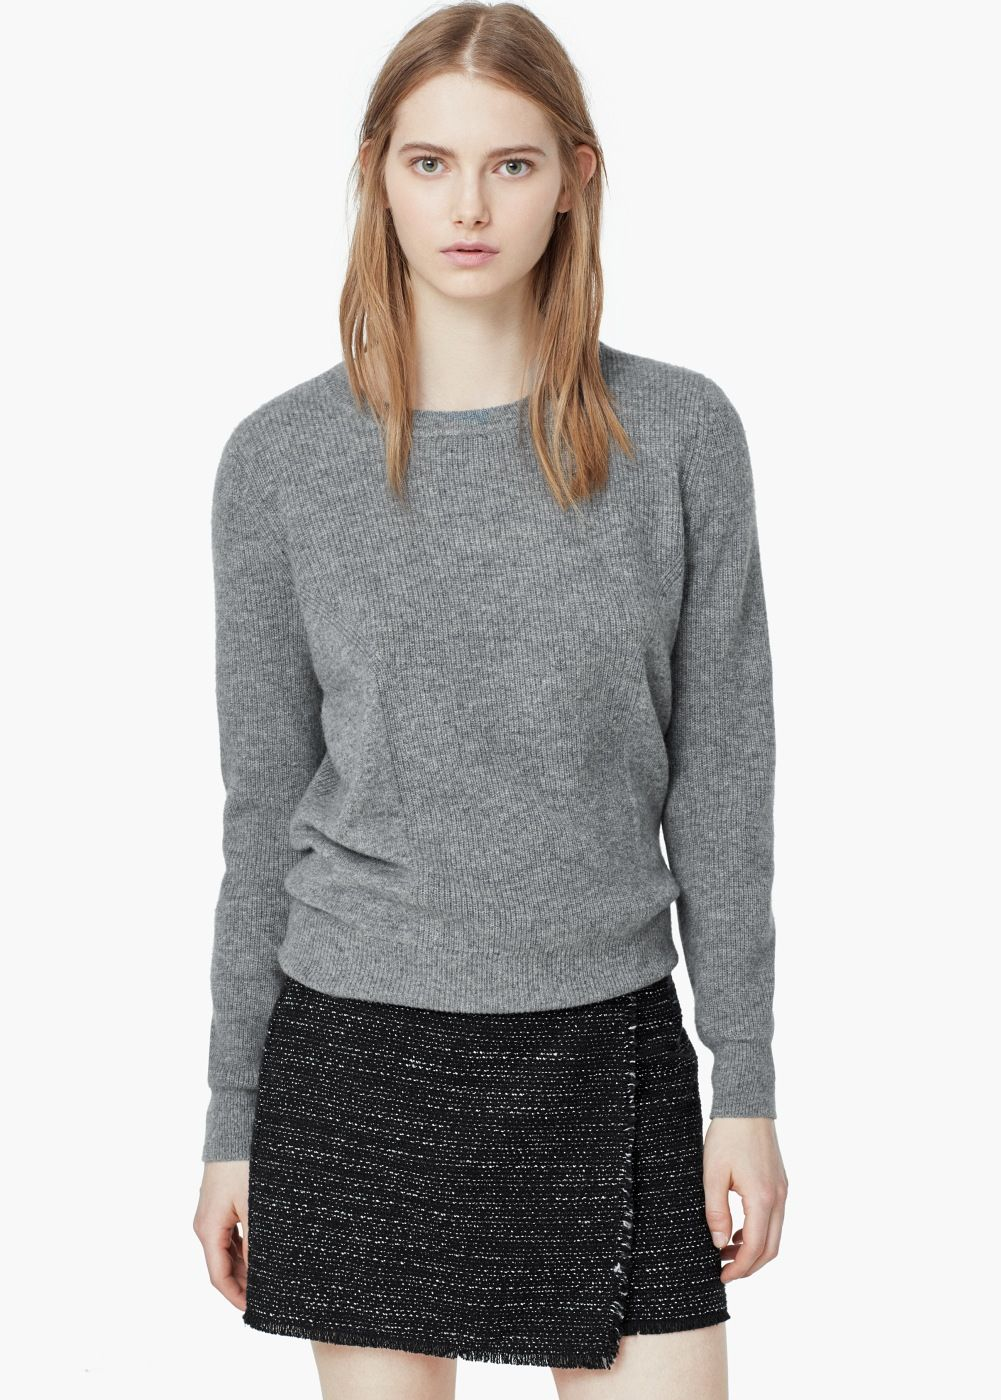 Printed image t-shirt | Cashmere sweaters, Pullover and Cashmere